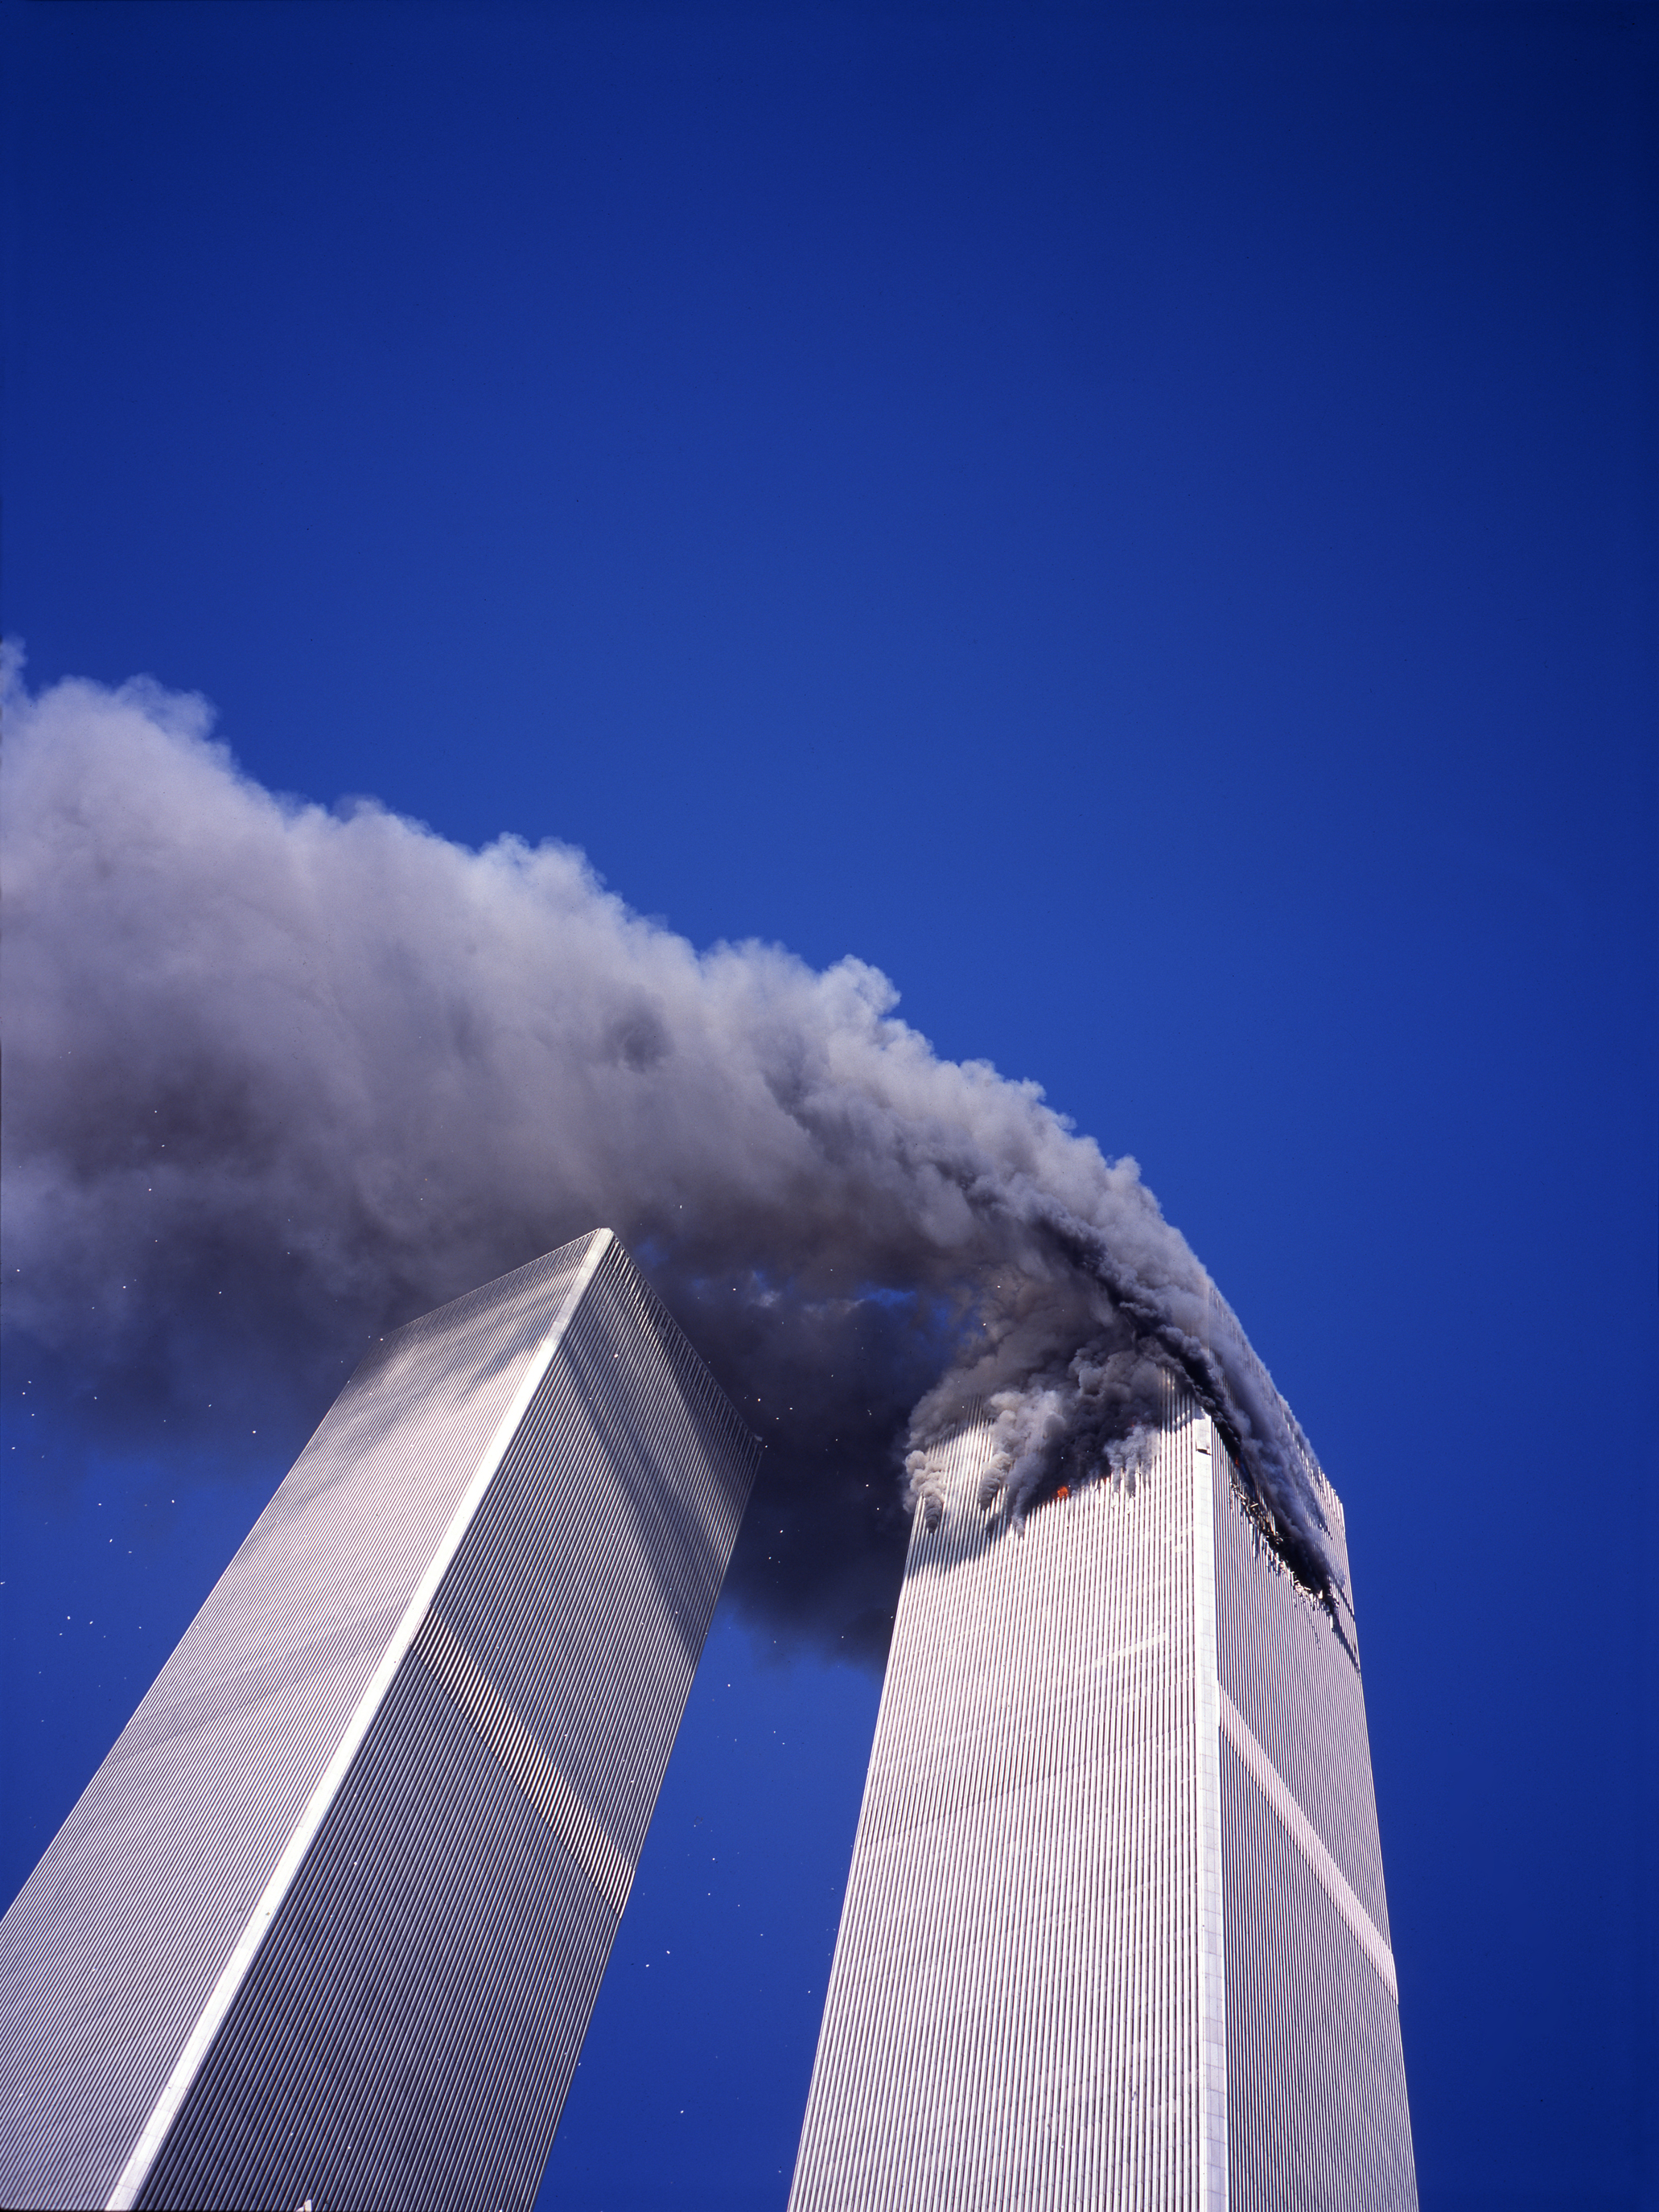 Smoke pours from the World Trade Center's North Tower, on Sept. 11, 2001.